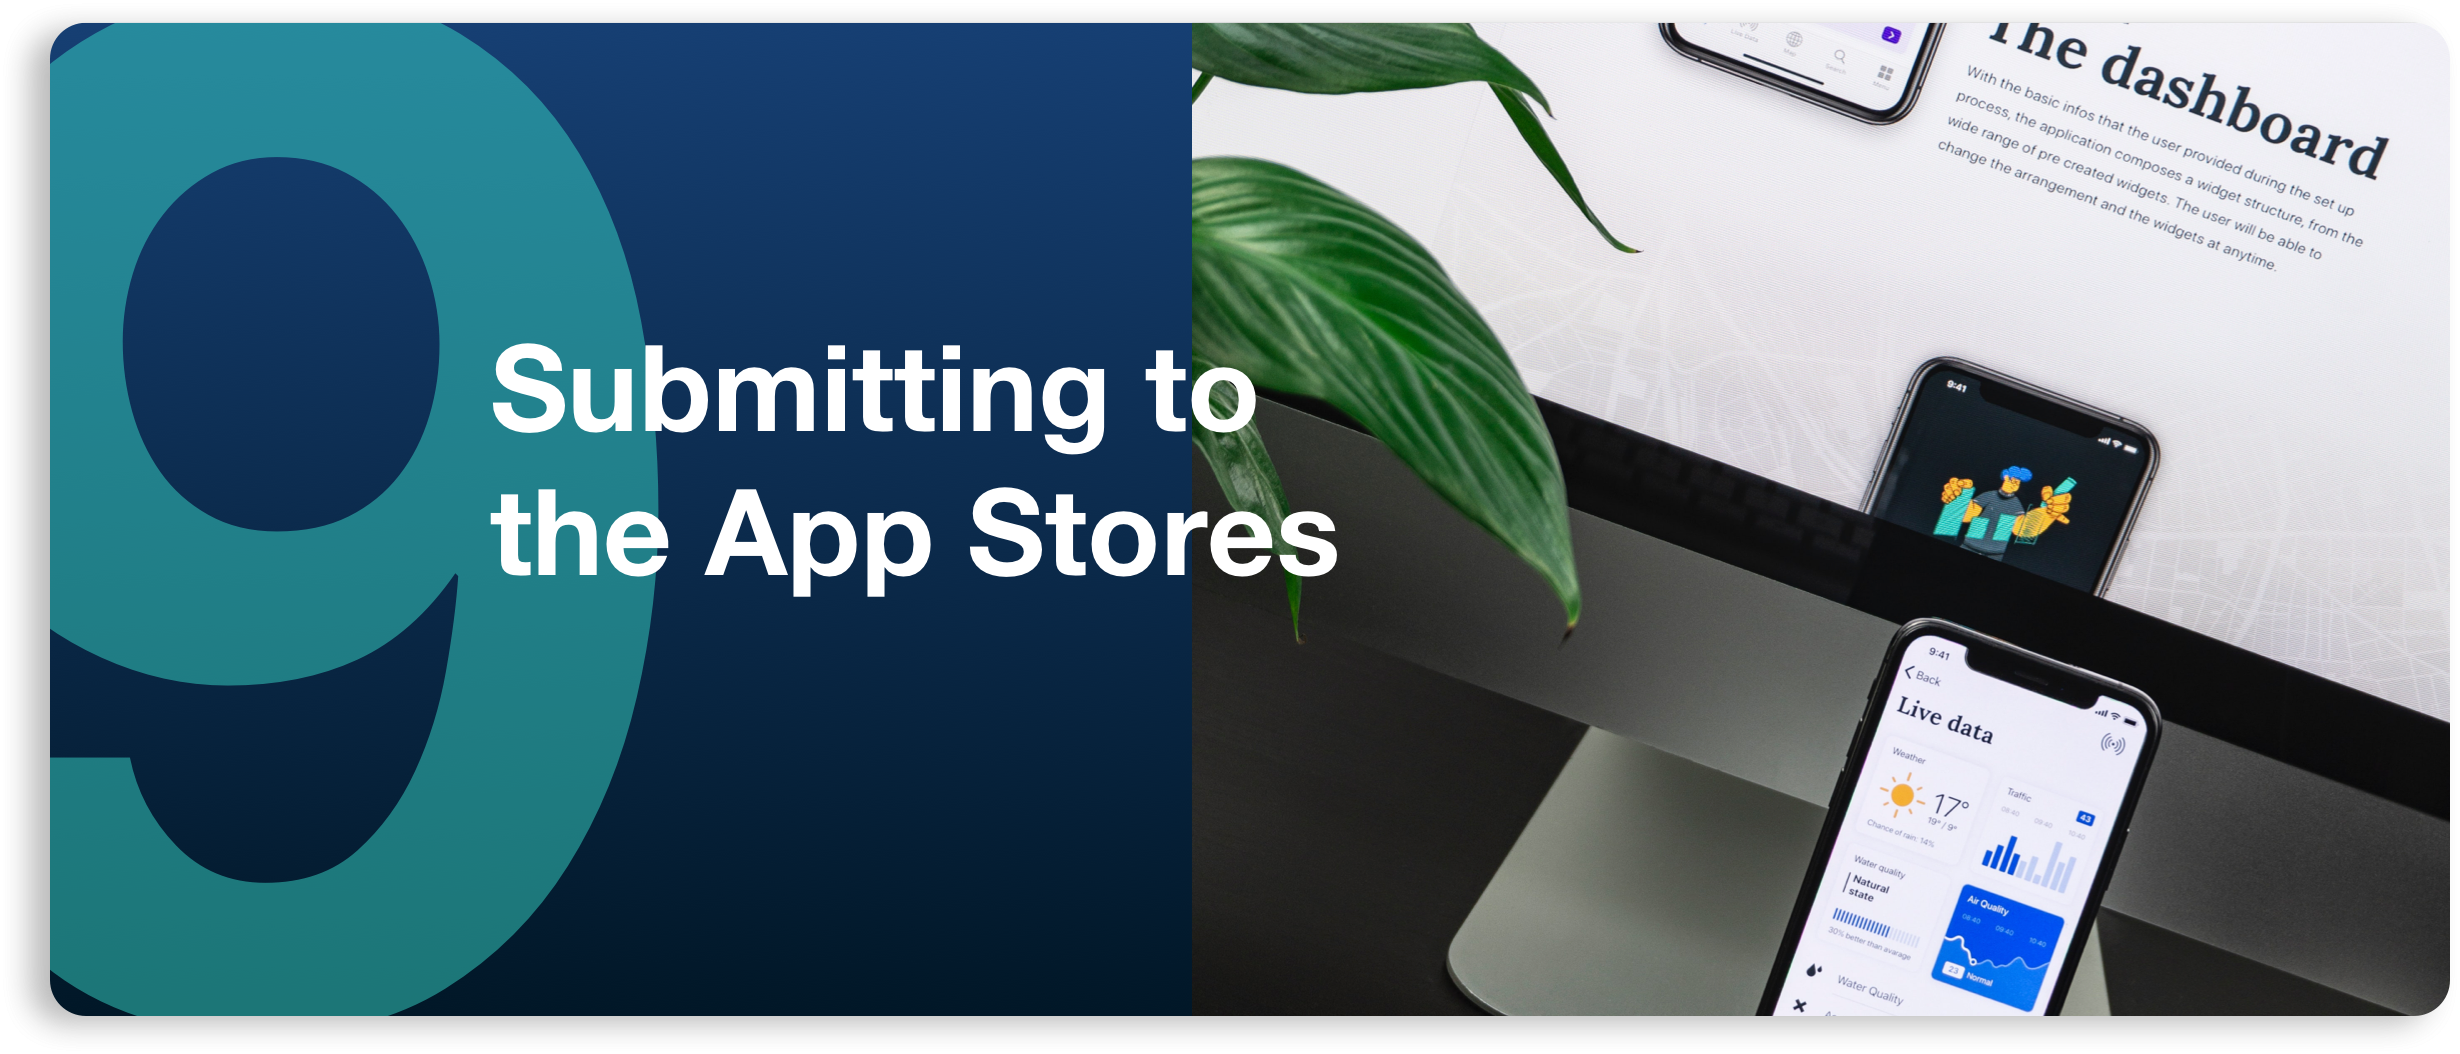 how-to-make-an-app-step-9-submitting-to-the-app-stores